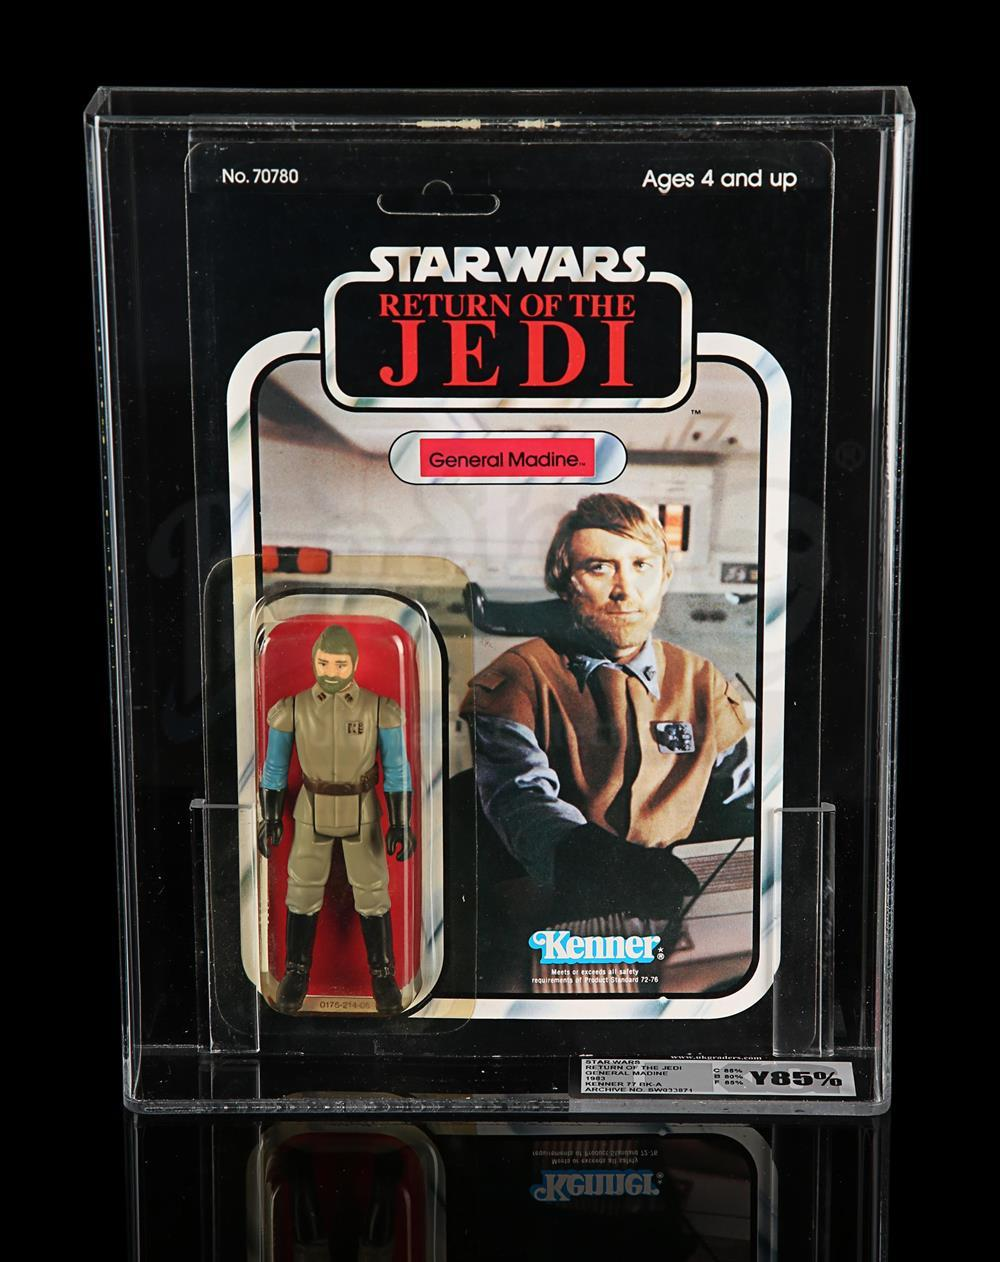 VINTAGE STAR WARS REPRODUCTION GENERAL MADINE RETURN OF THE JEDI STAFF